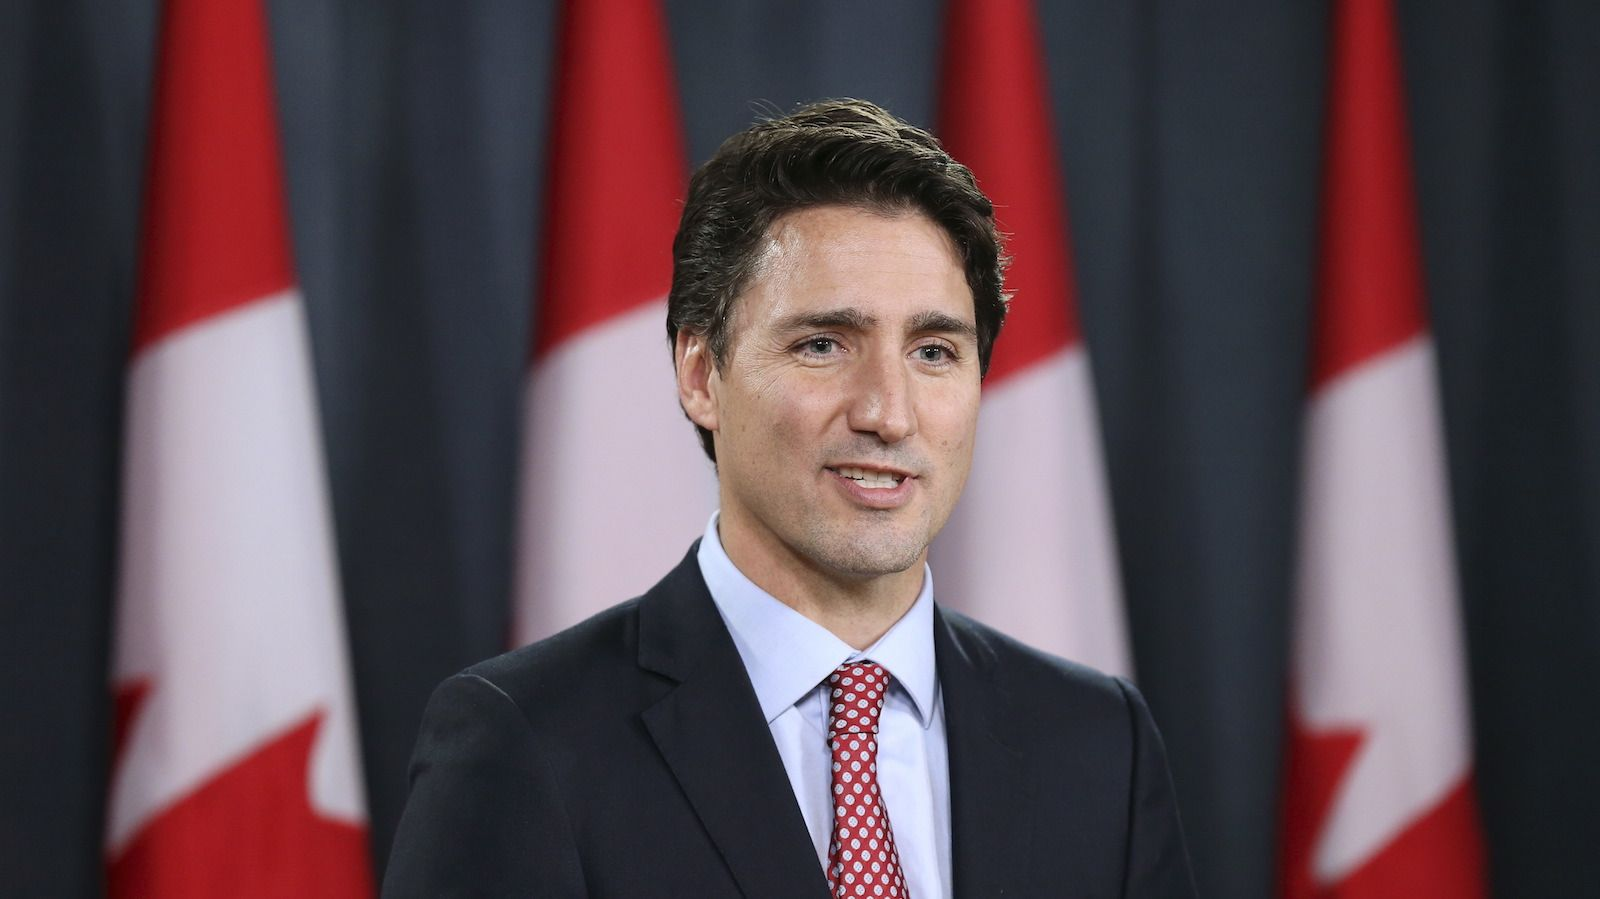 Prime Minister Justin Trudeau of Canada. (Photo courtesy: Reuters/Chris Wattie)